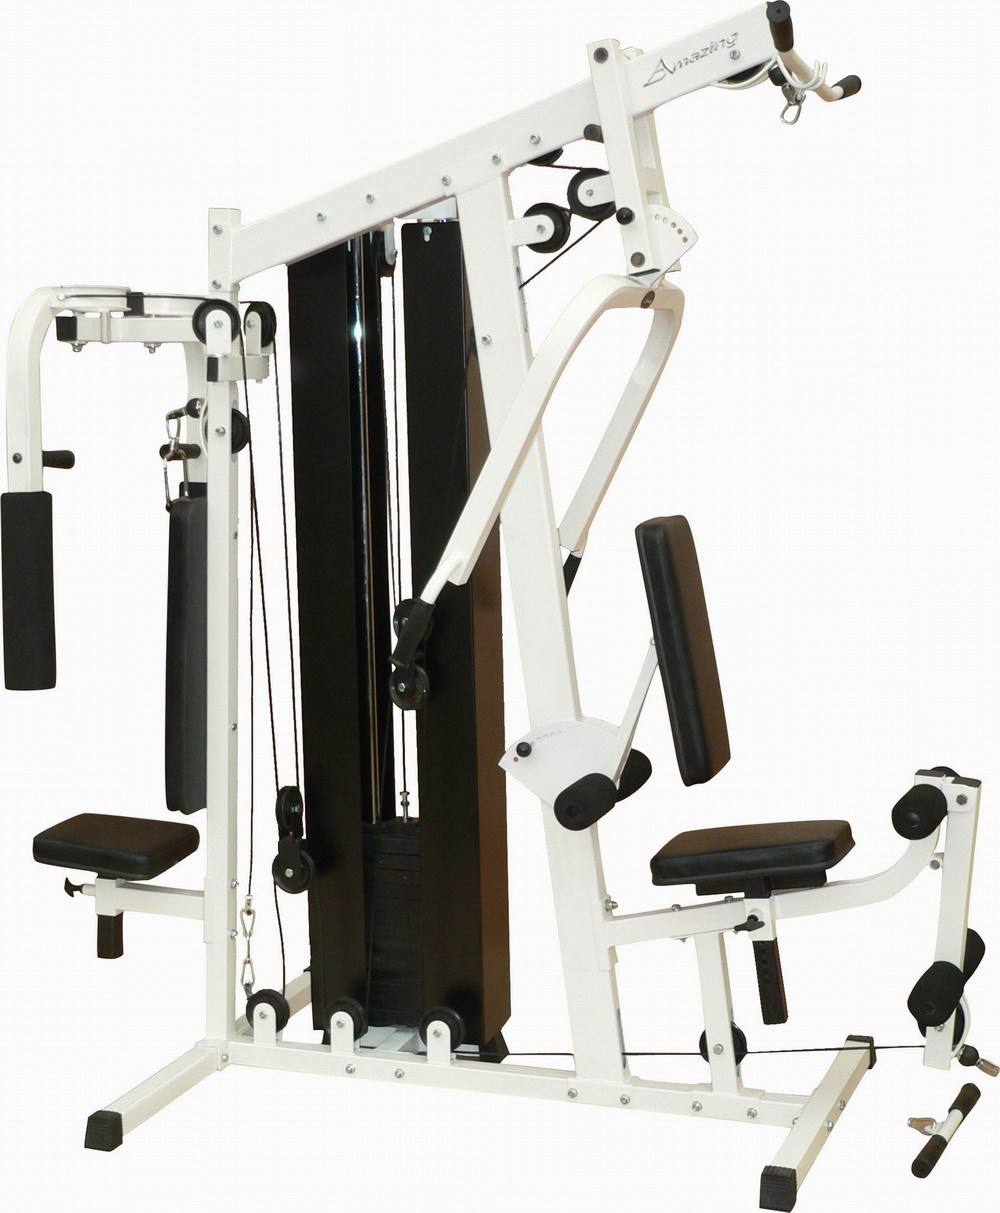 Ama b ten station home gym with groups weight stack